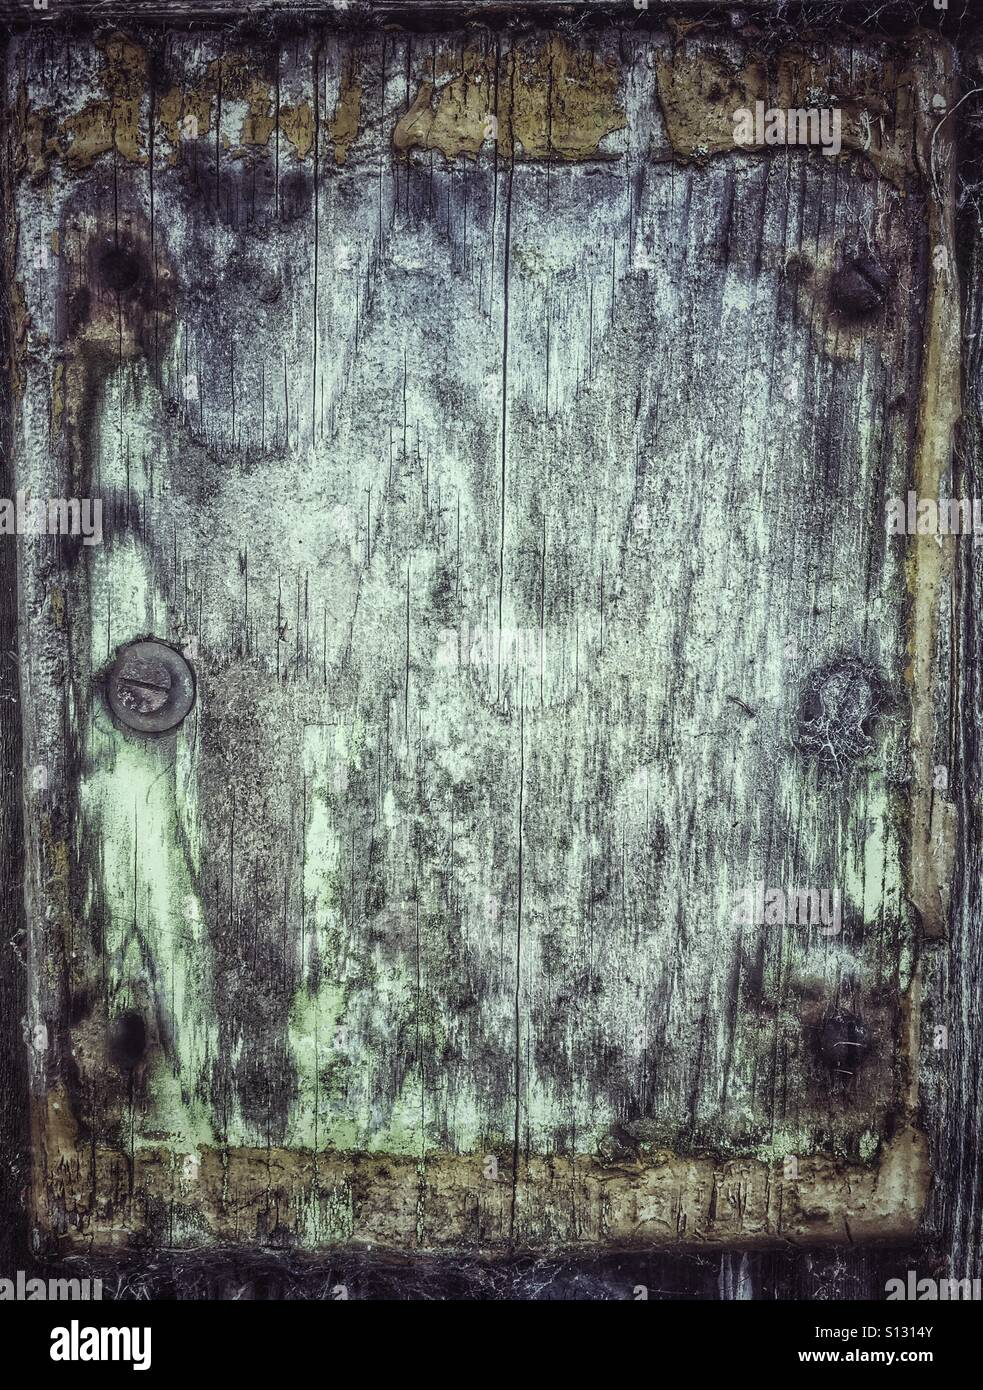 Grungy wood with retro filter muted tones - Stock Image